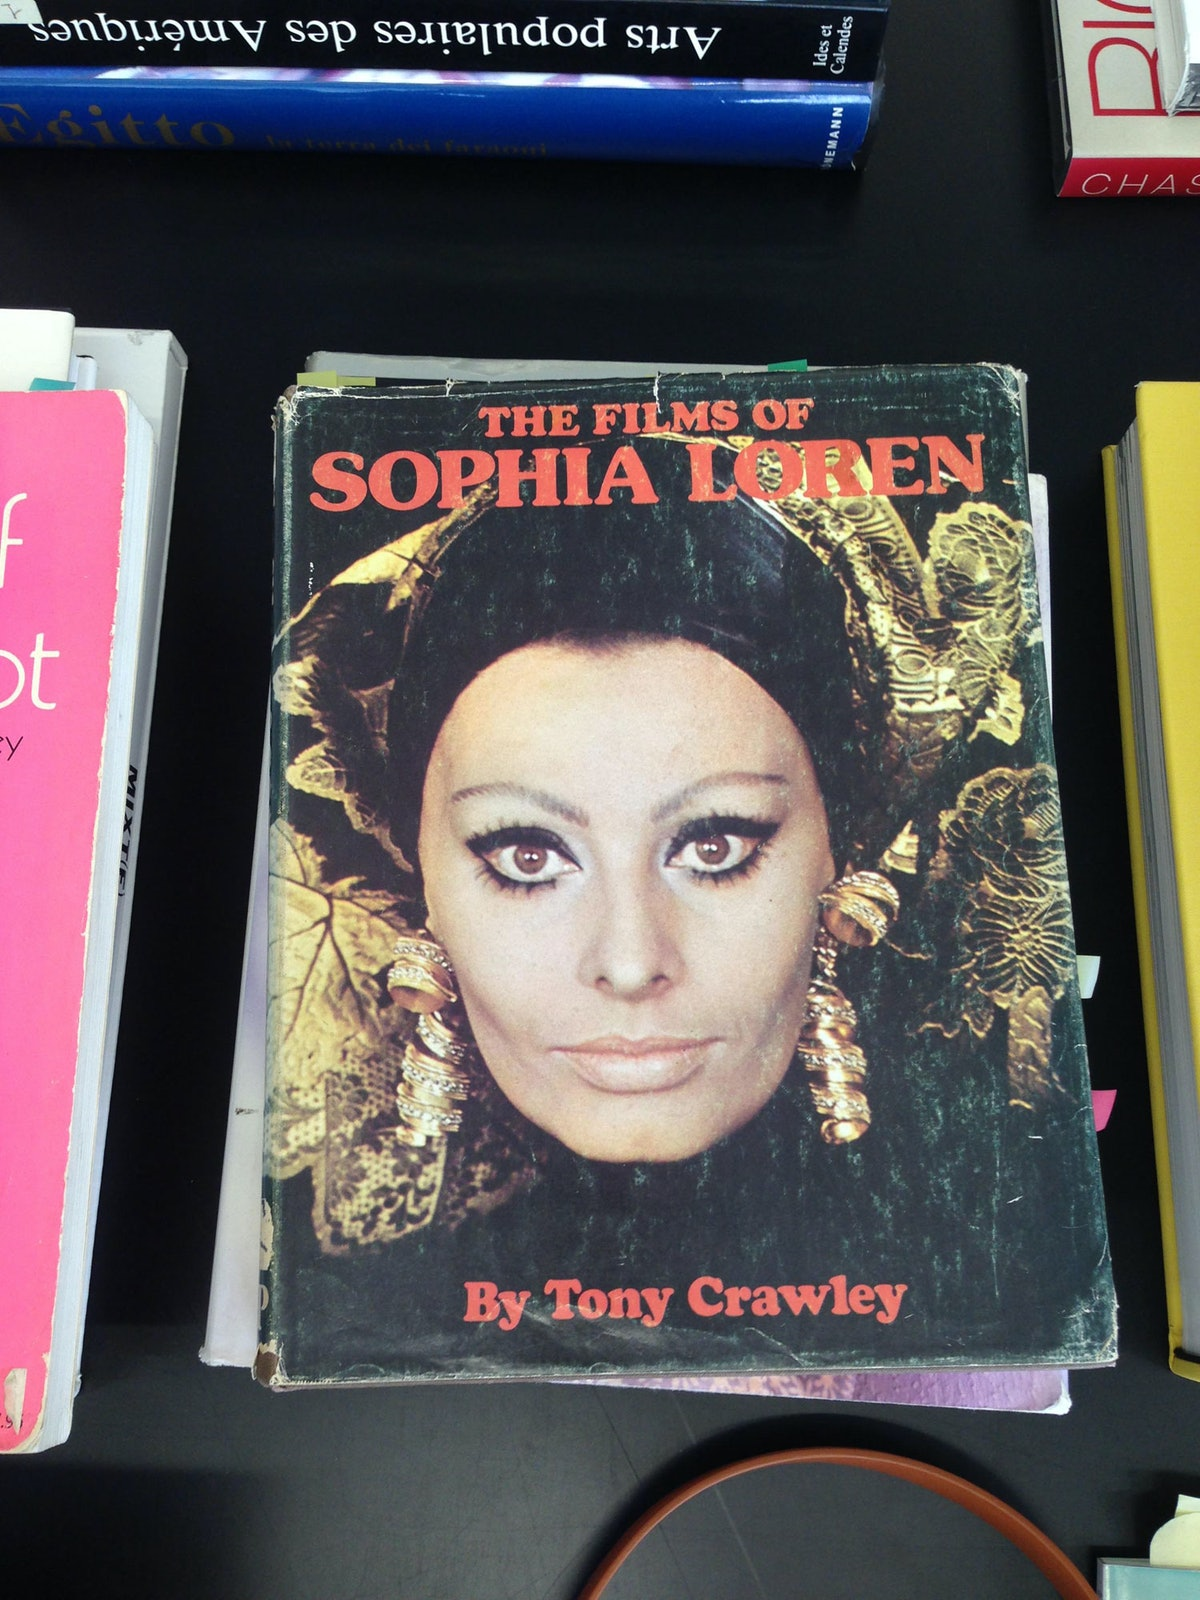 """""""I was at a meeting in Milan, when I spotted this book of photos of Sophia Loren from different film..."""